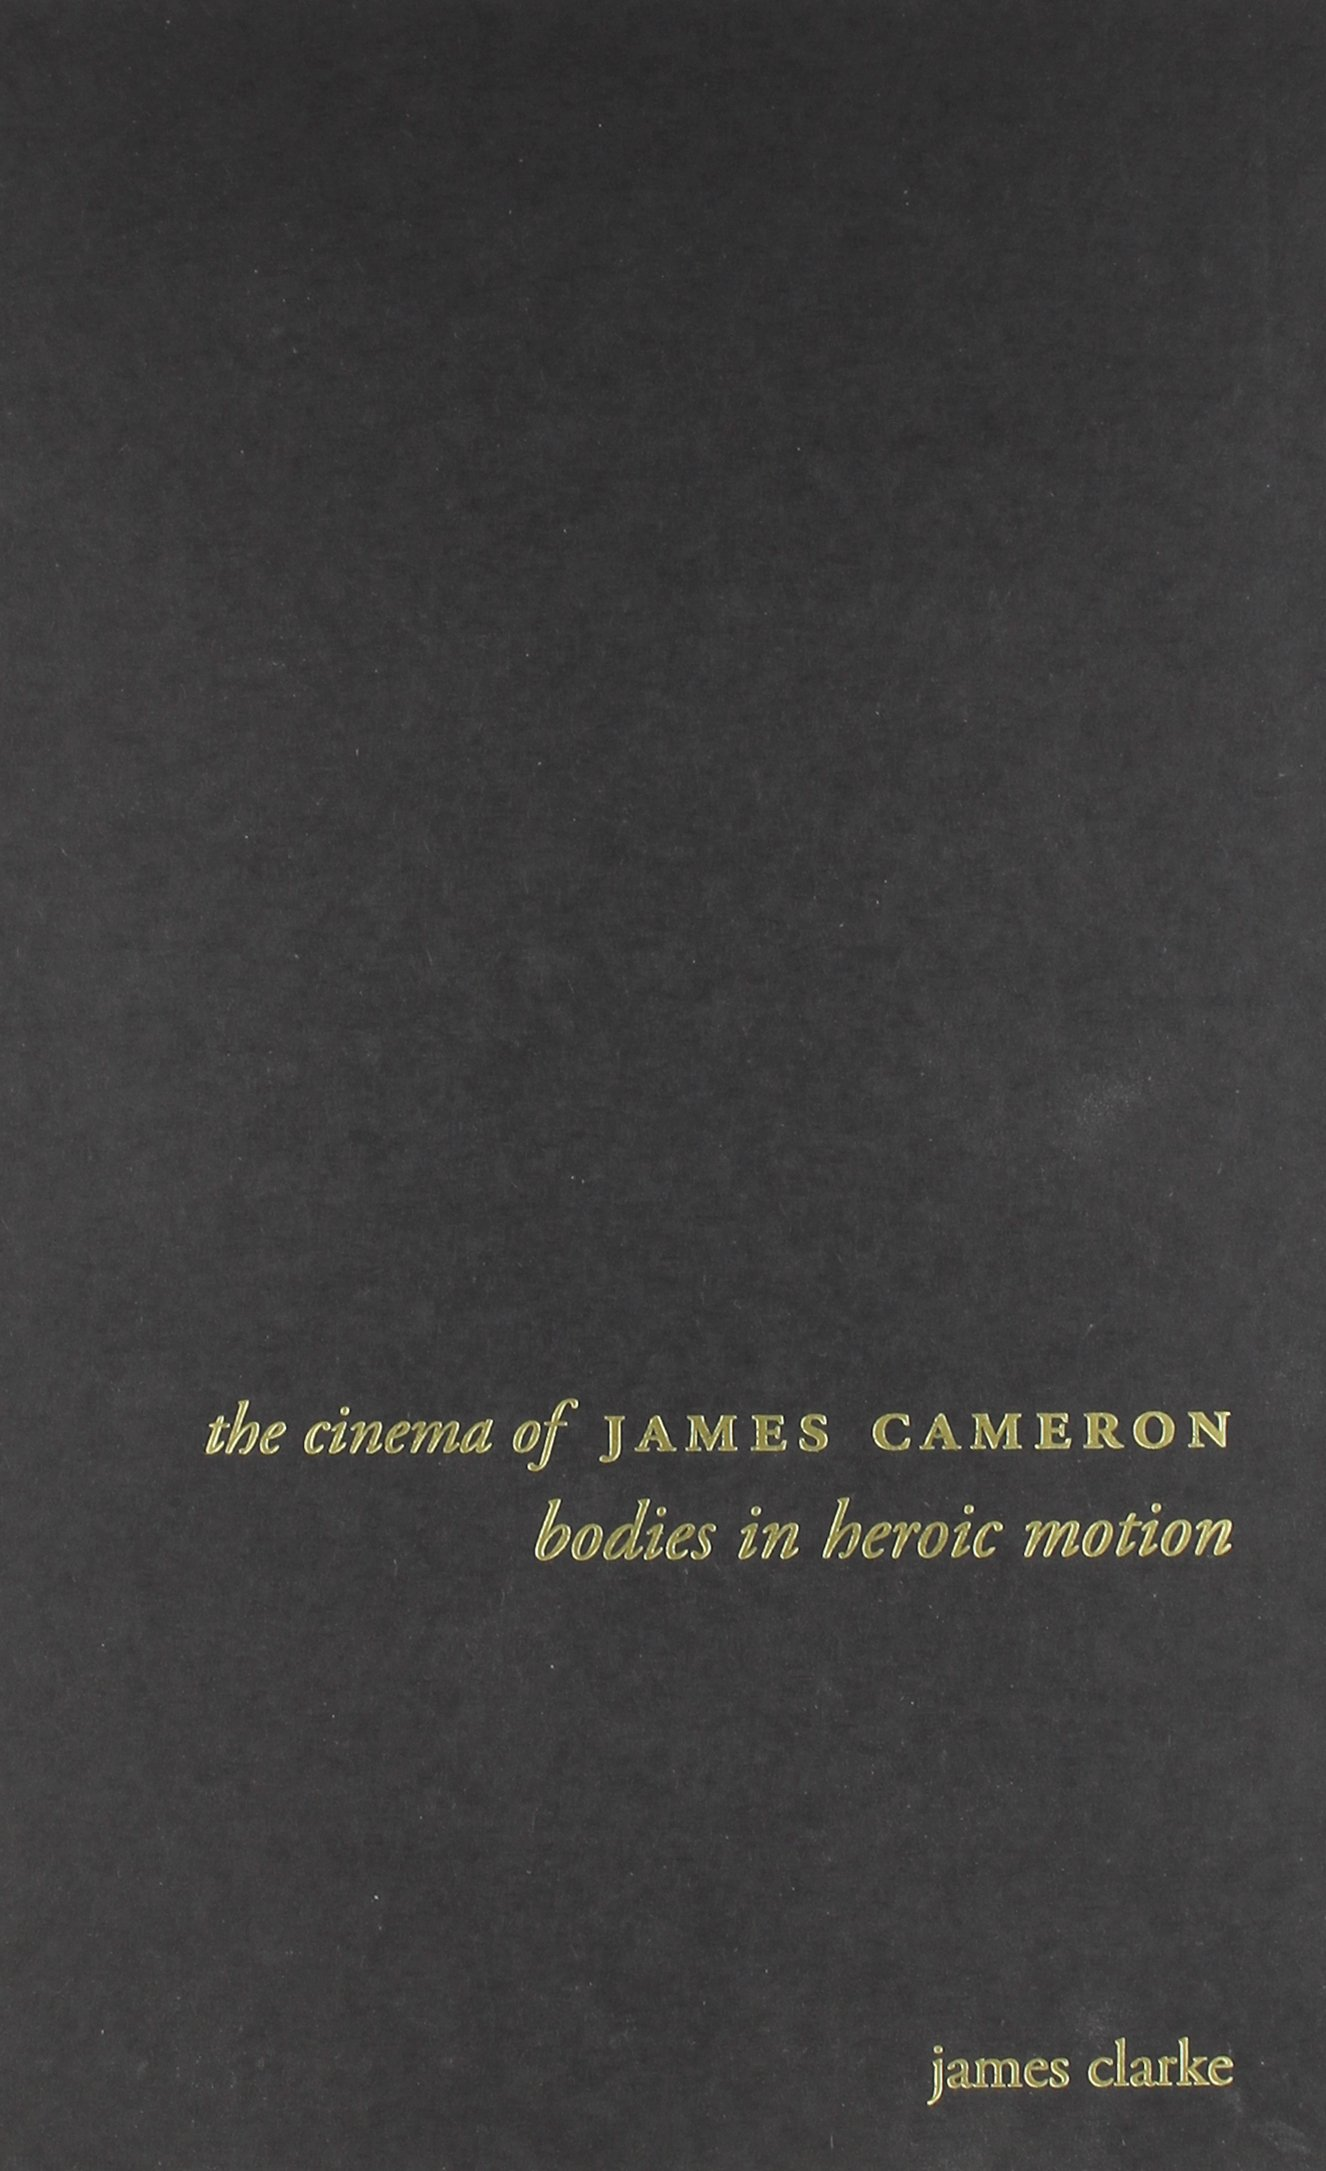 The Cinema of James Cameron: Bodies in Heroic Motion (Directors Cuts)